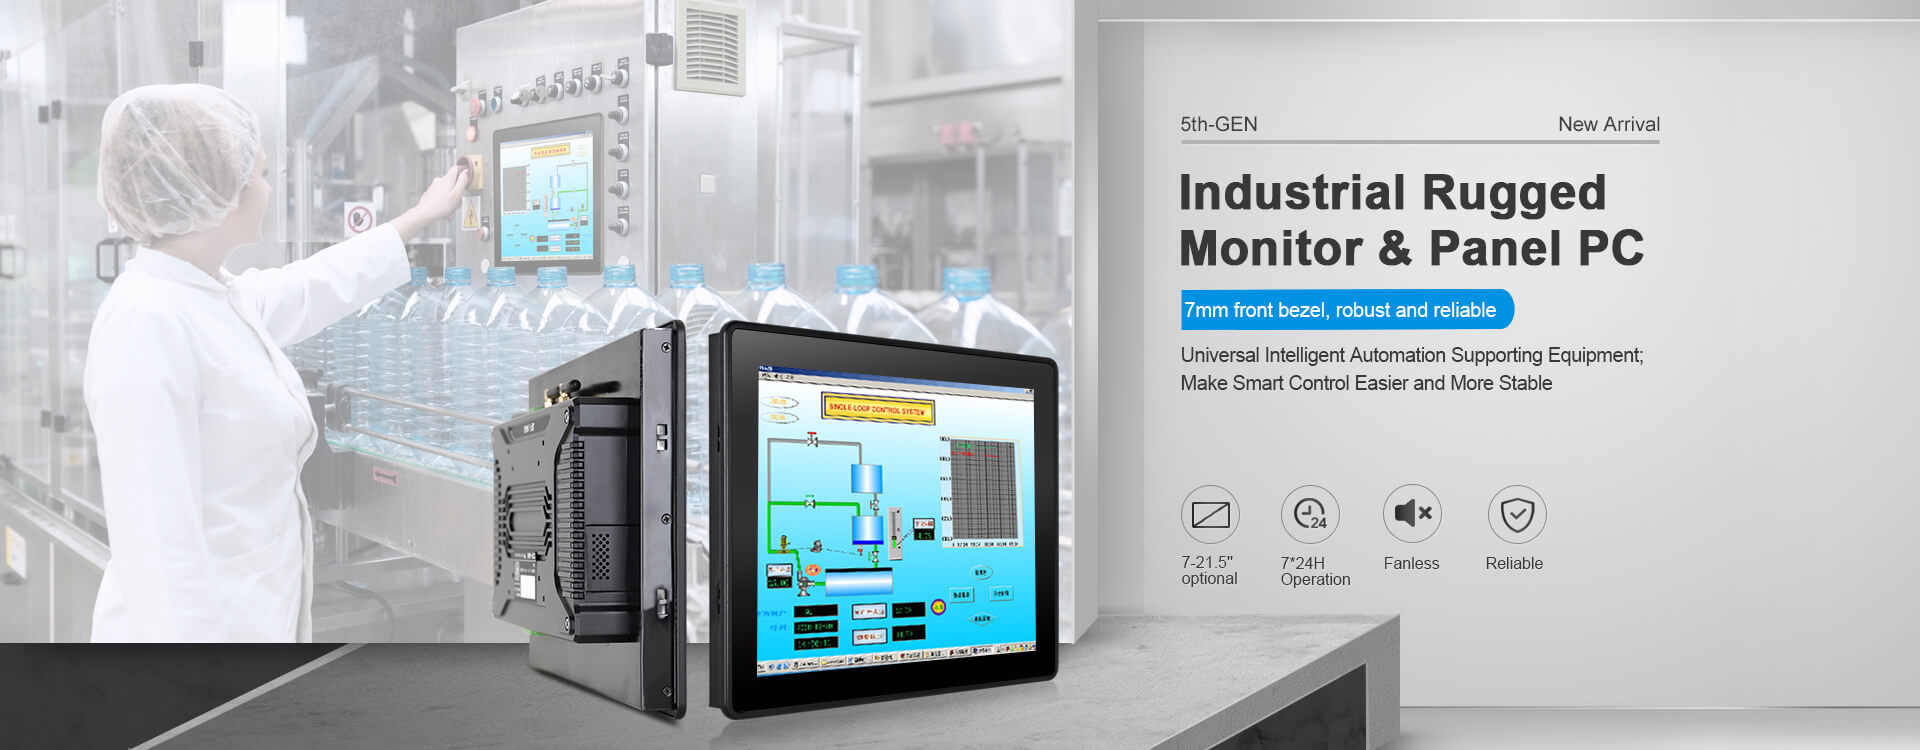 Touch Think 5th-GEN Industrial Rugged Touch Monitor and Panel PC